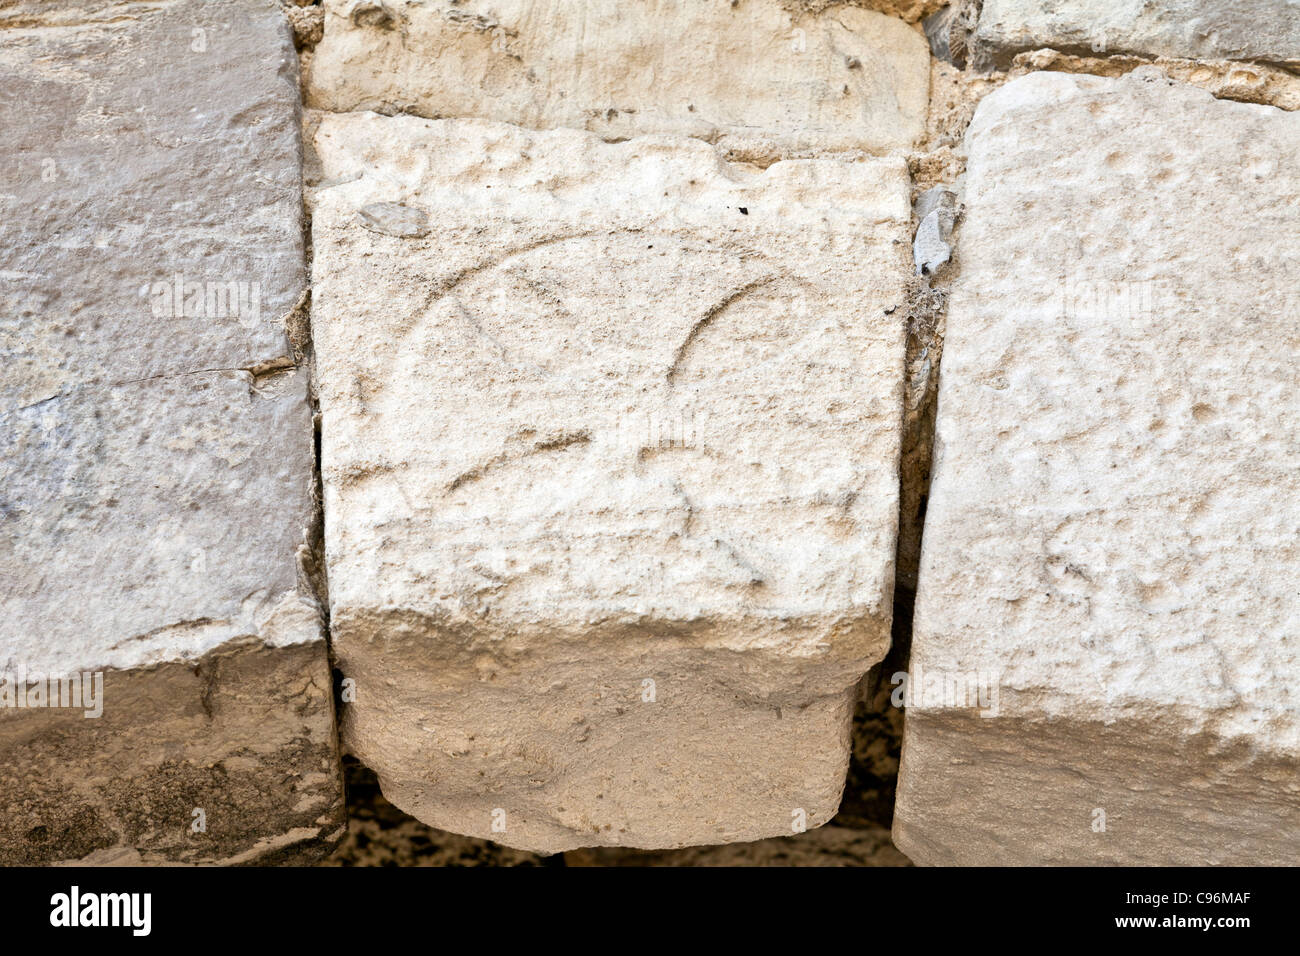 The Templar Knights Cross carved in the entrance of the Leiria Castle. Leiria, Portugal. - Stock Image